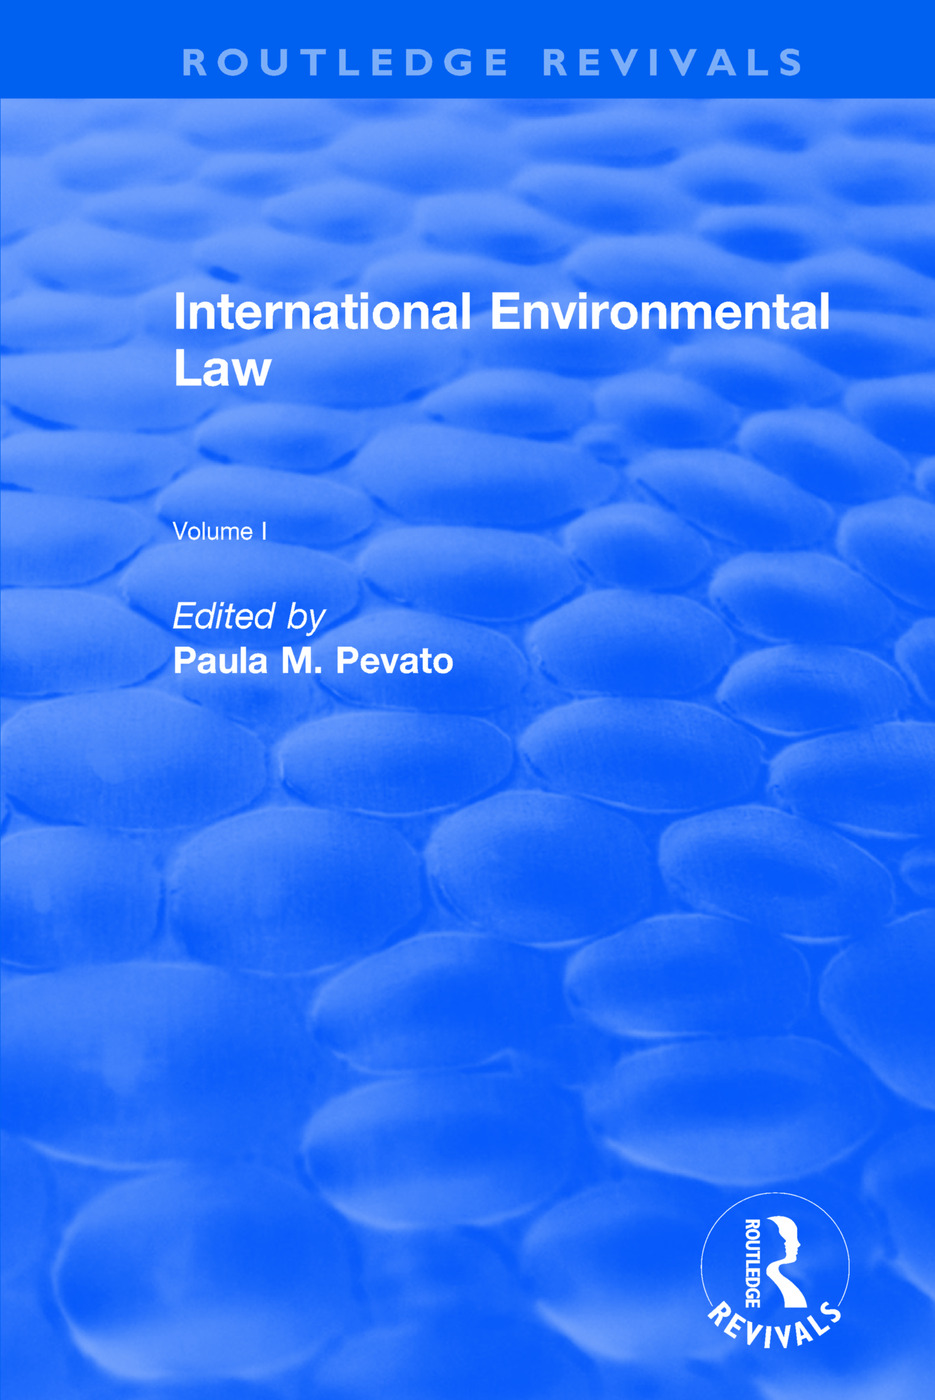 International Environmental Law, Volumes I and II